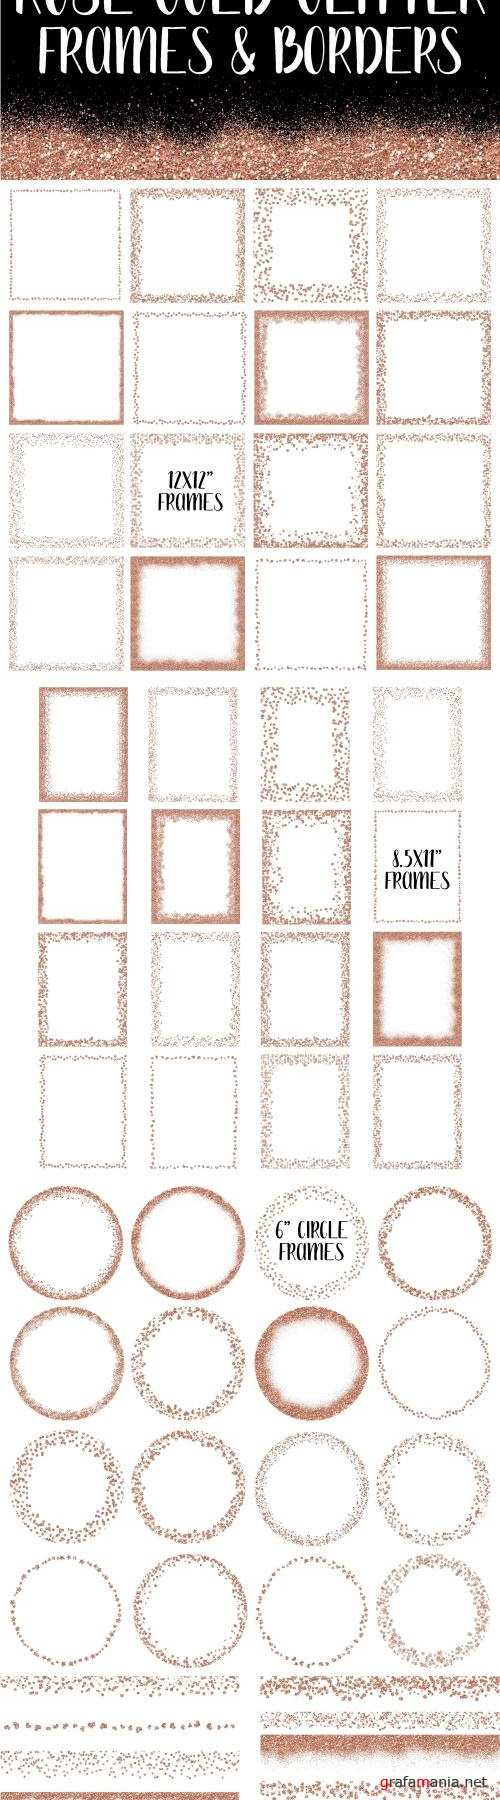 Rose Gold Glitter Frames and Borders - 2422668